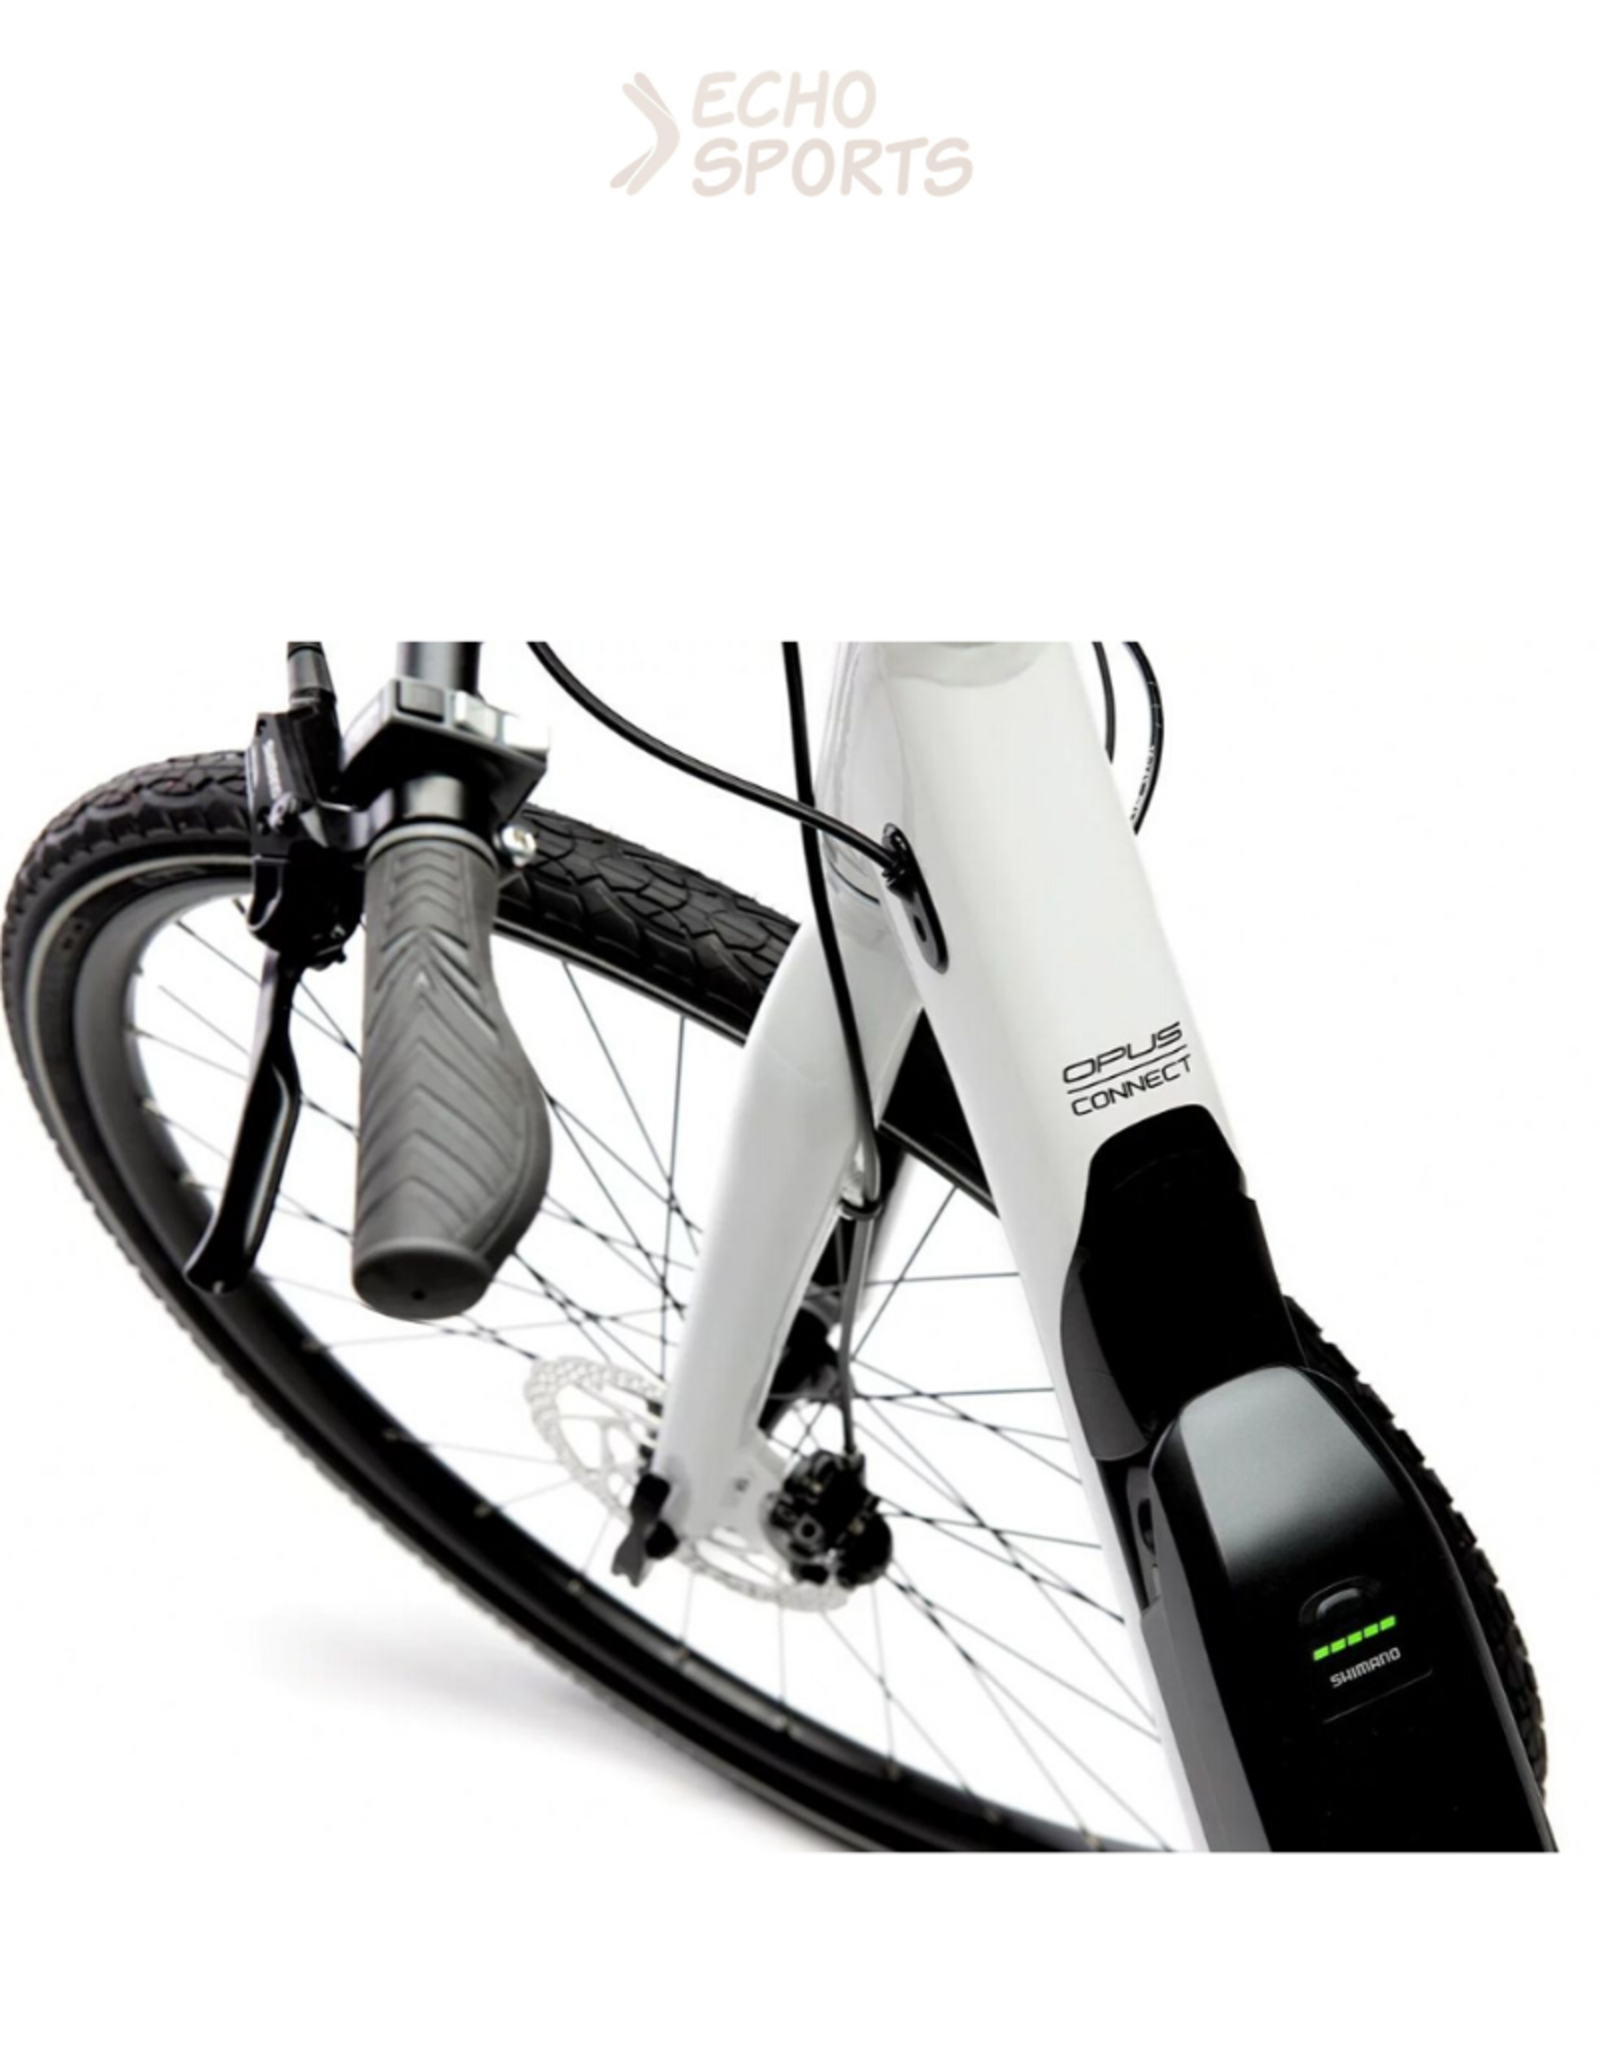 OPUS OPUS CONNECT STEPS 5000 WHITE EBIKE